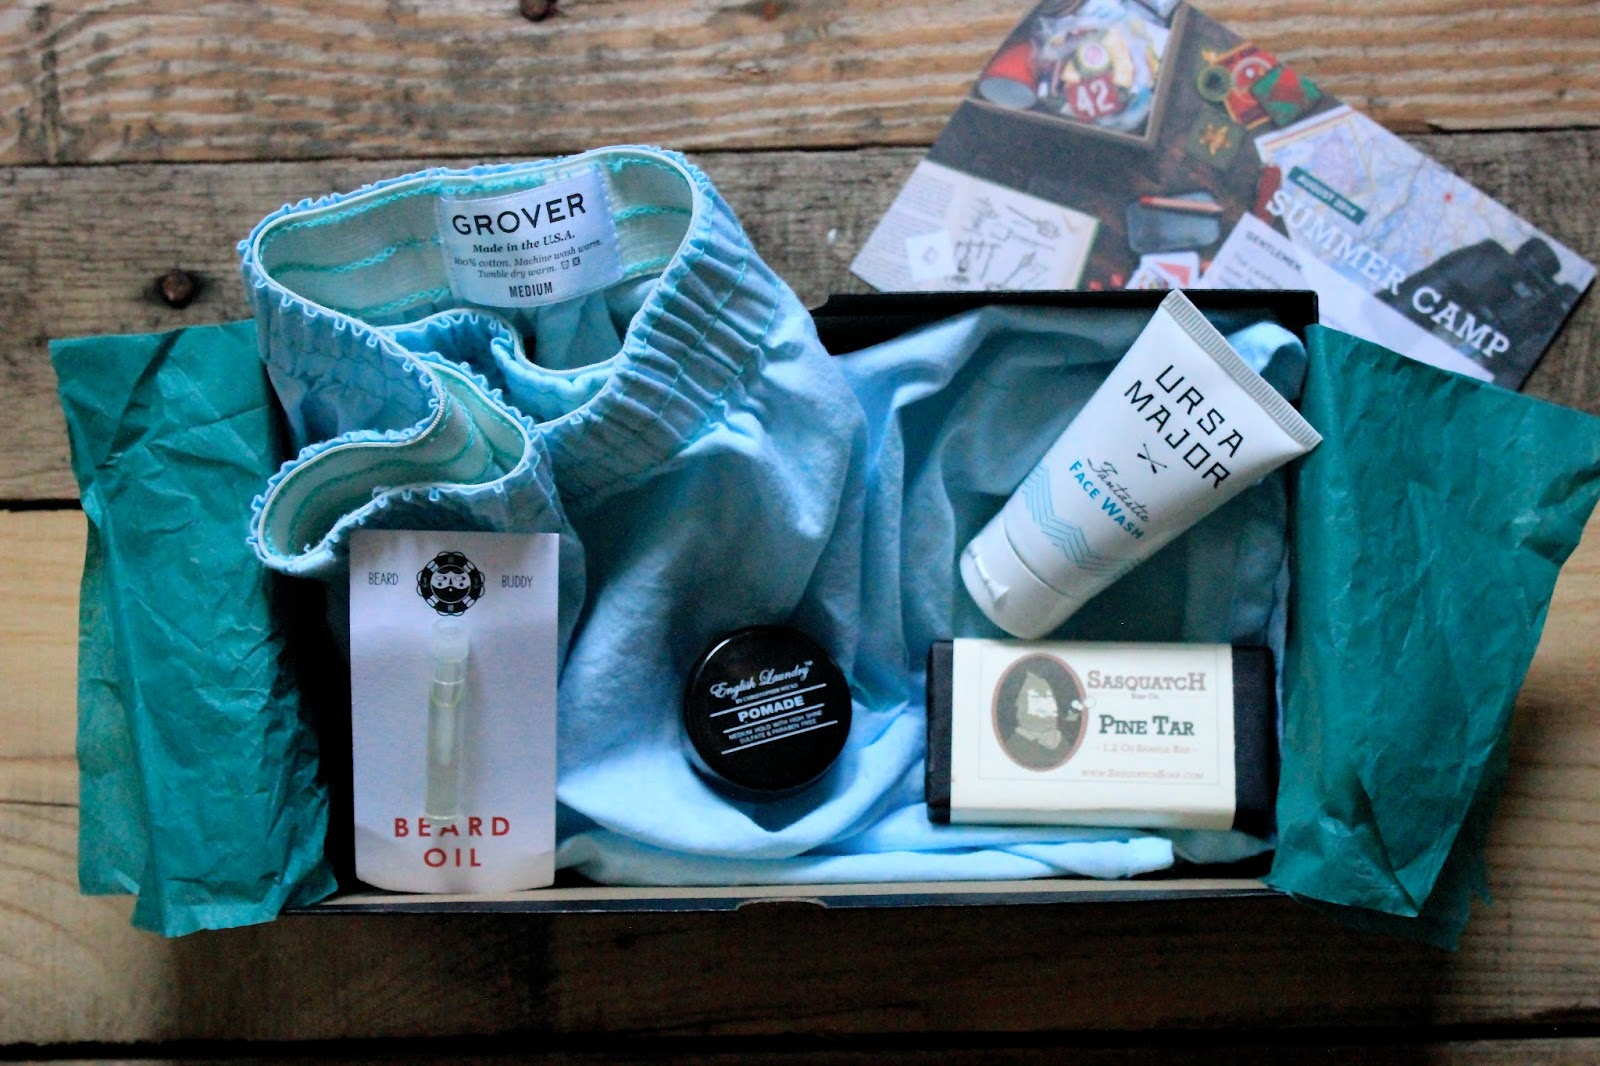 Birchbox Man, Ursa Major, Grover, English Laundry, Beard Buddy, Dr. Squatch